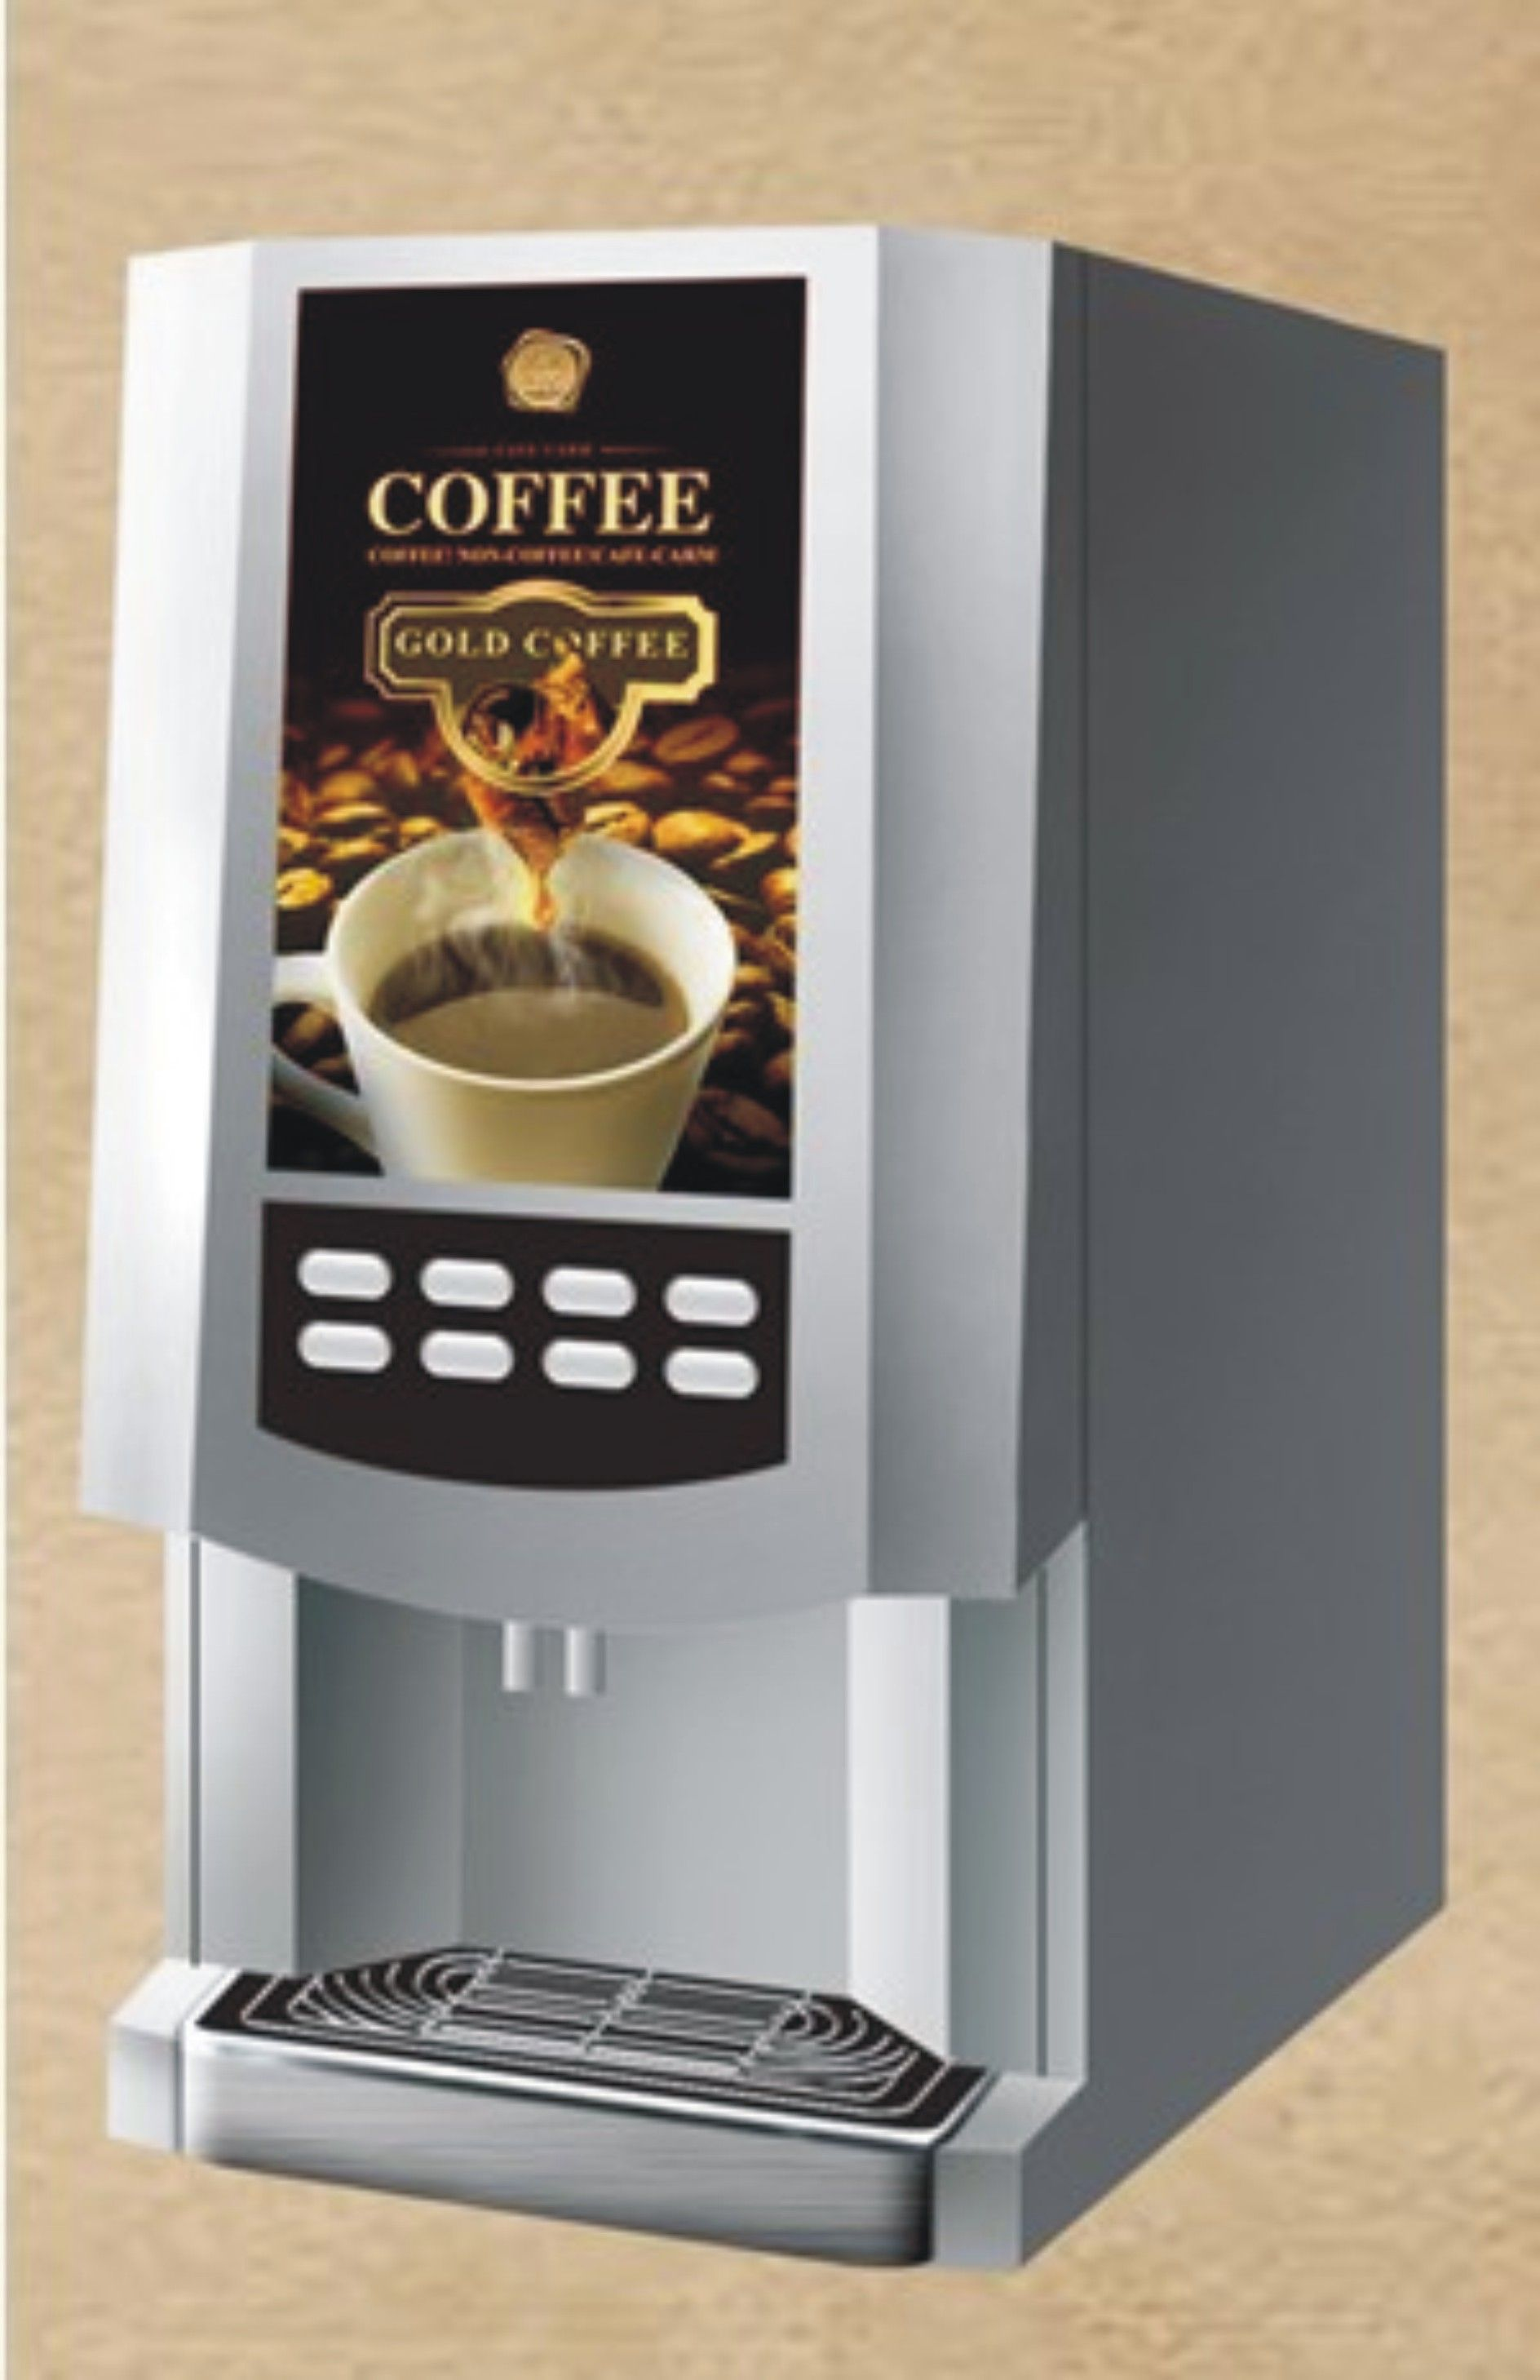 Coffee Vending Machine Coffee Makers Pinterest